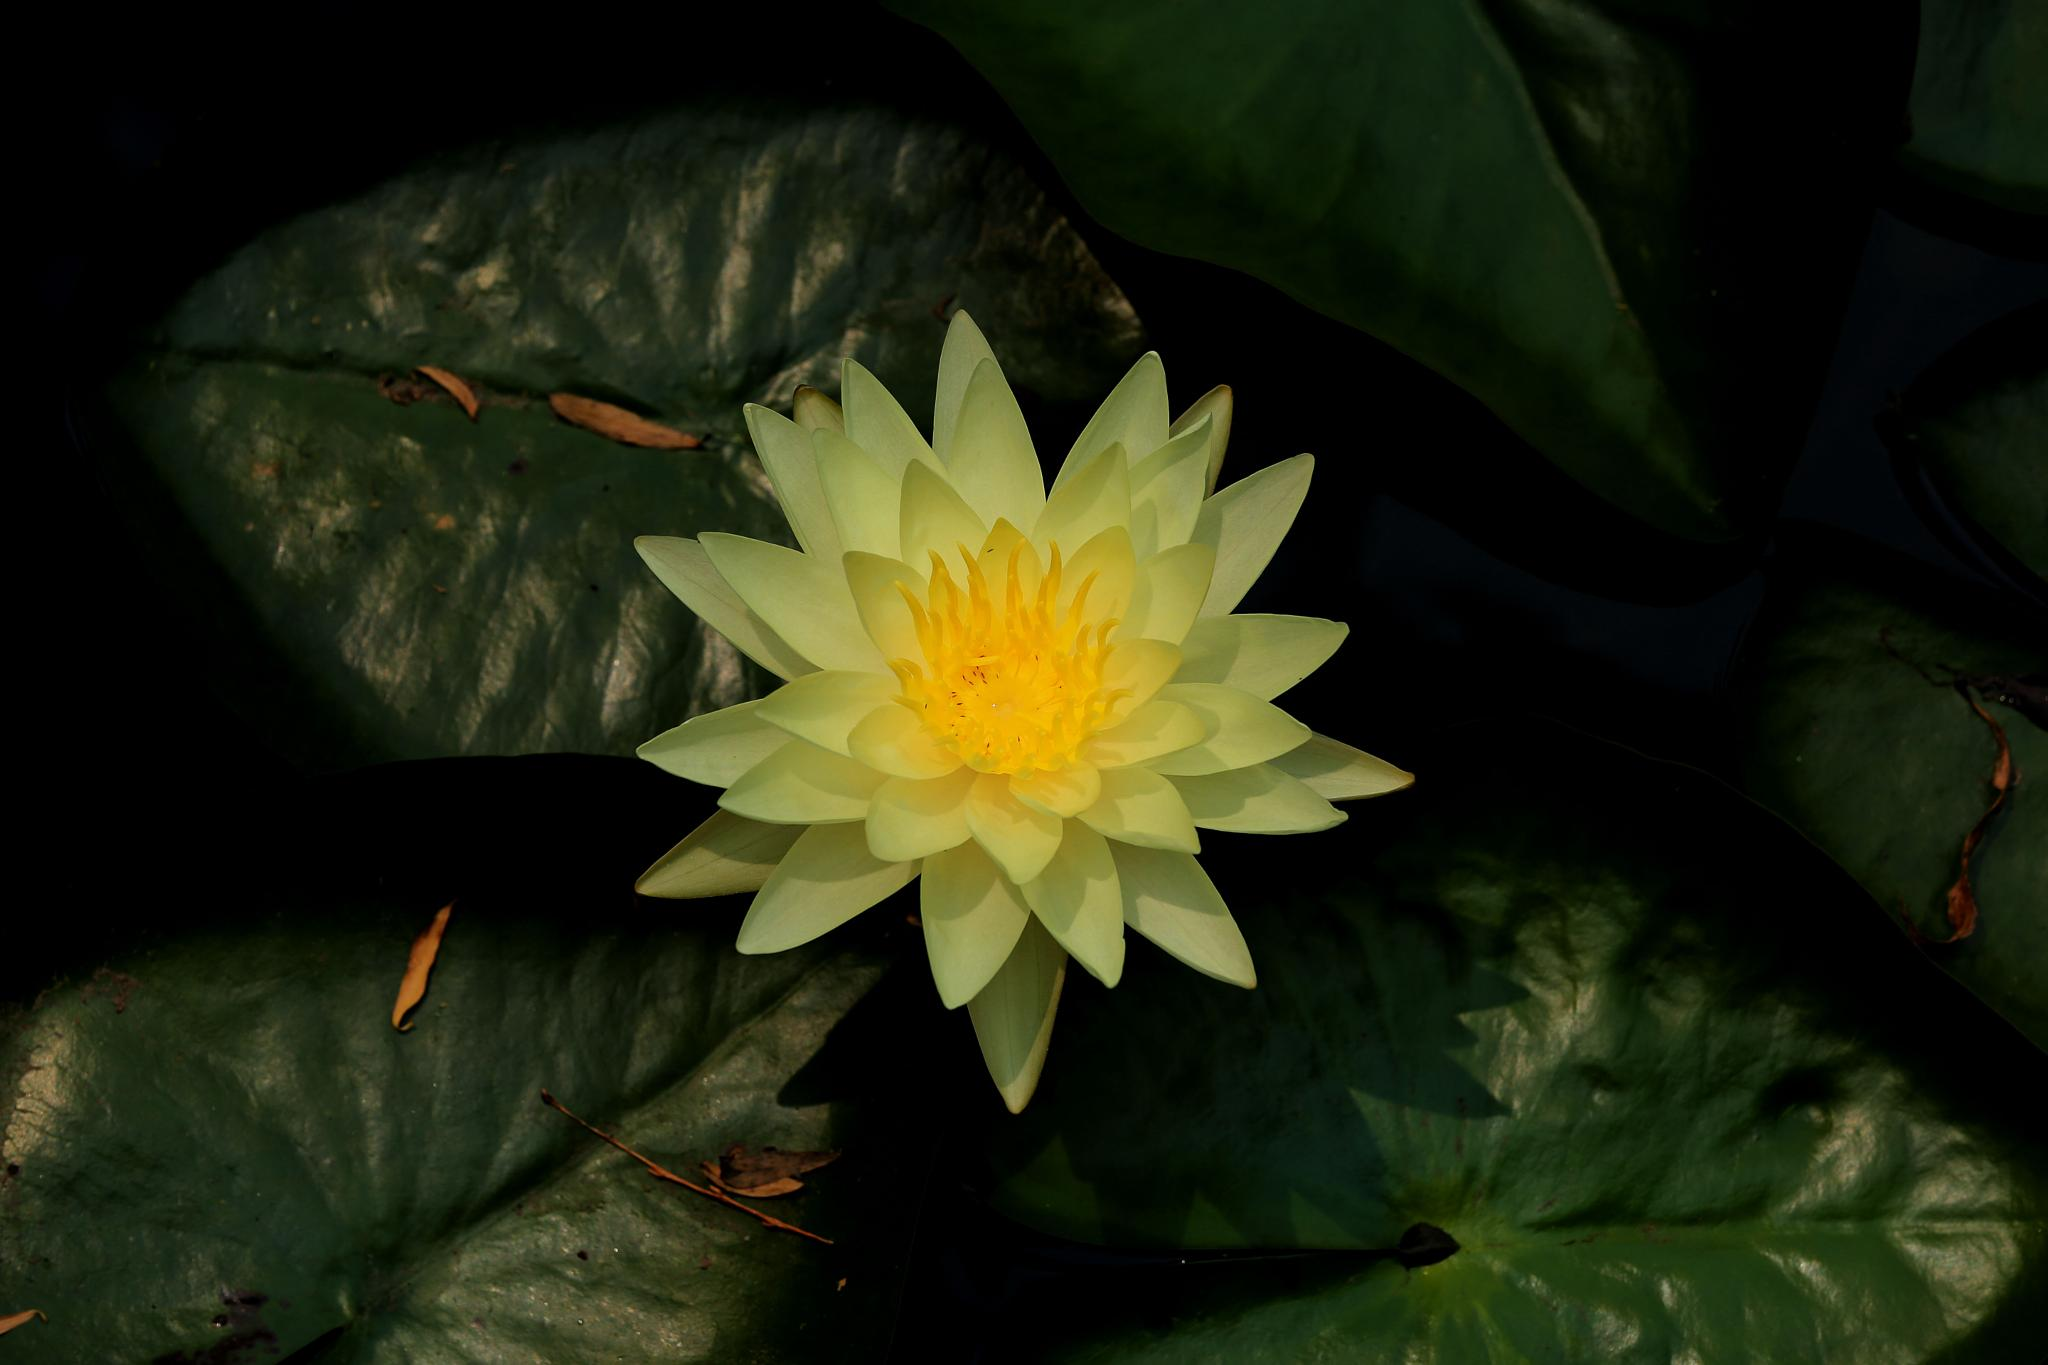 A golden water lily by James zhao